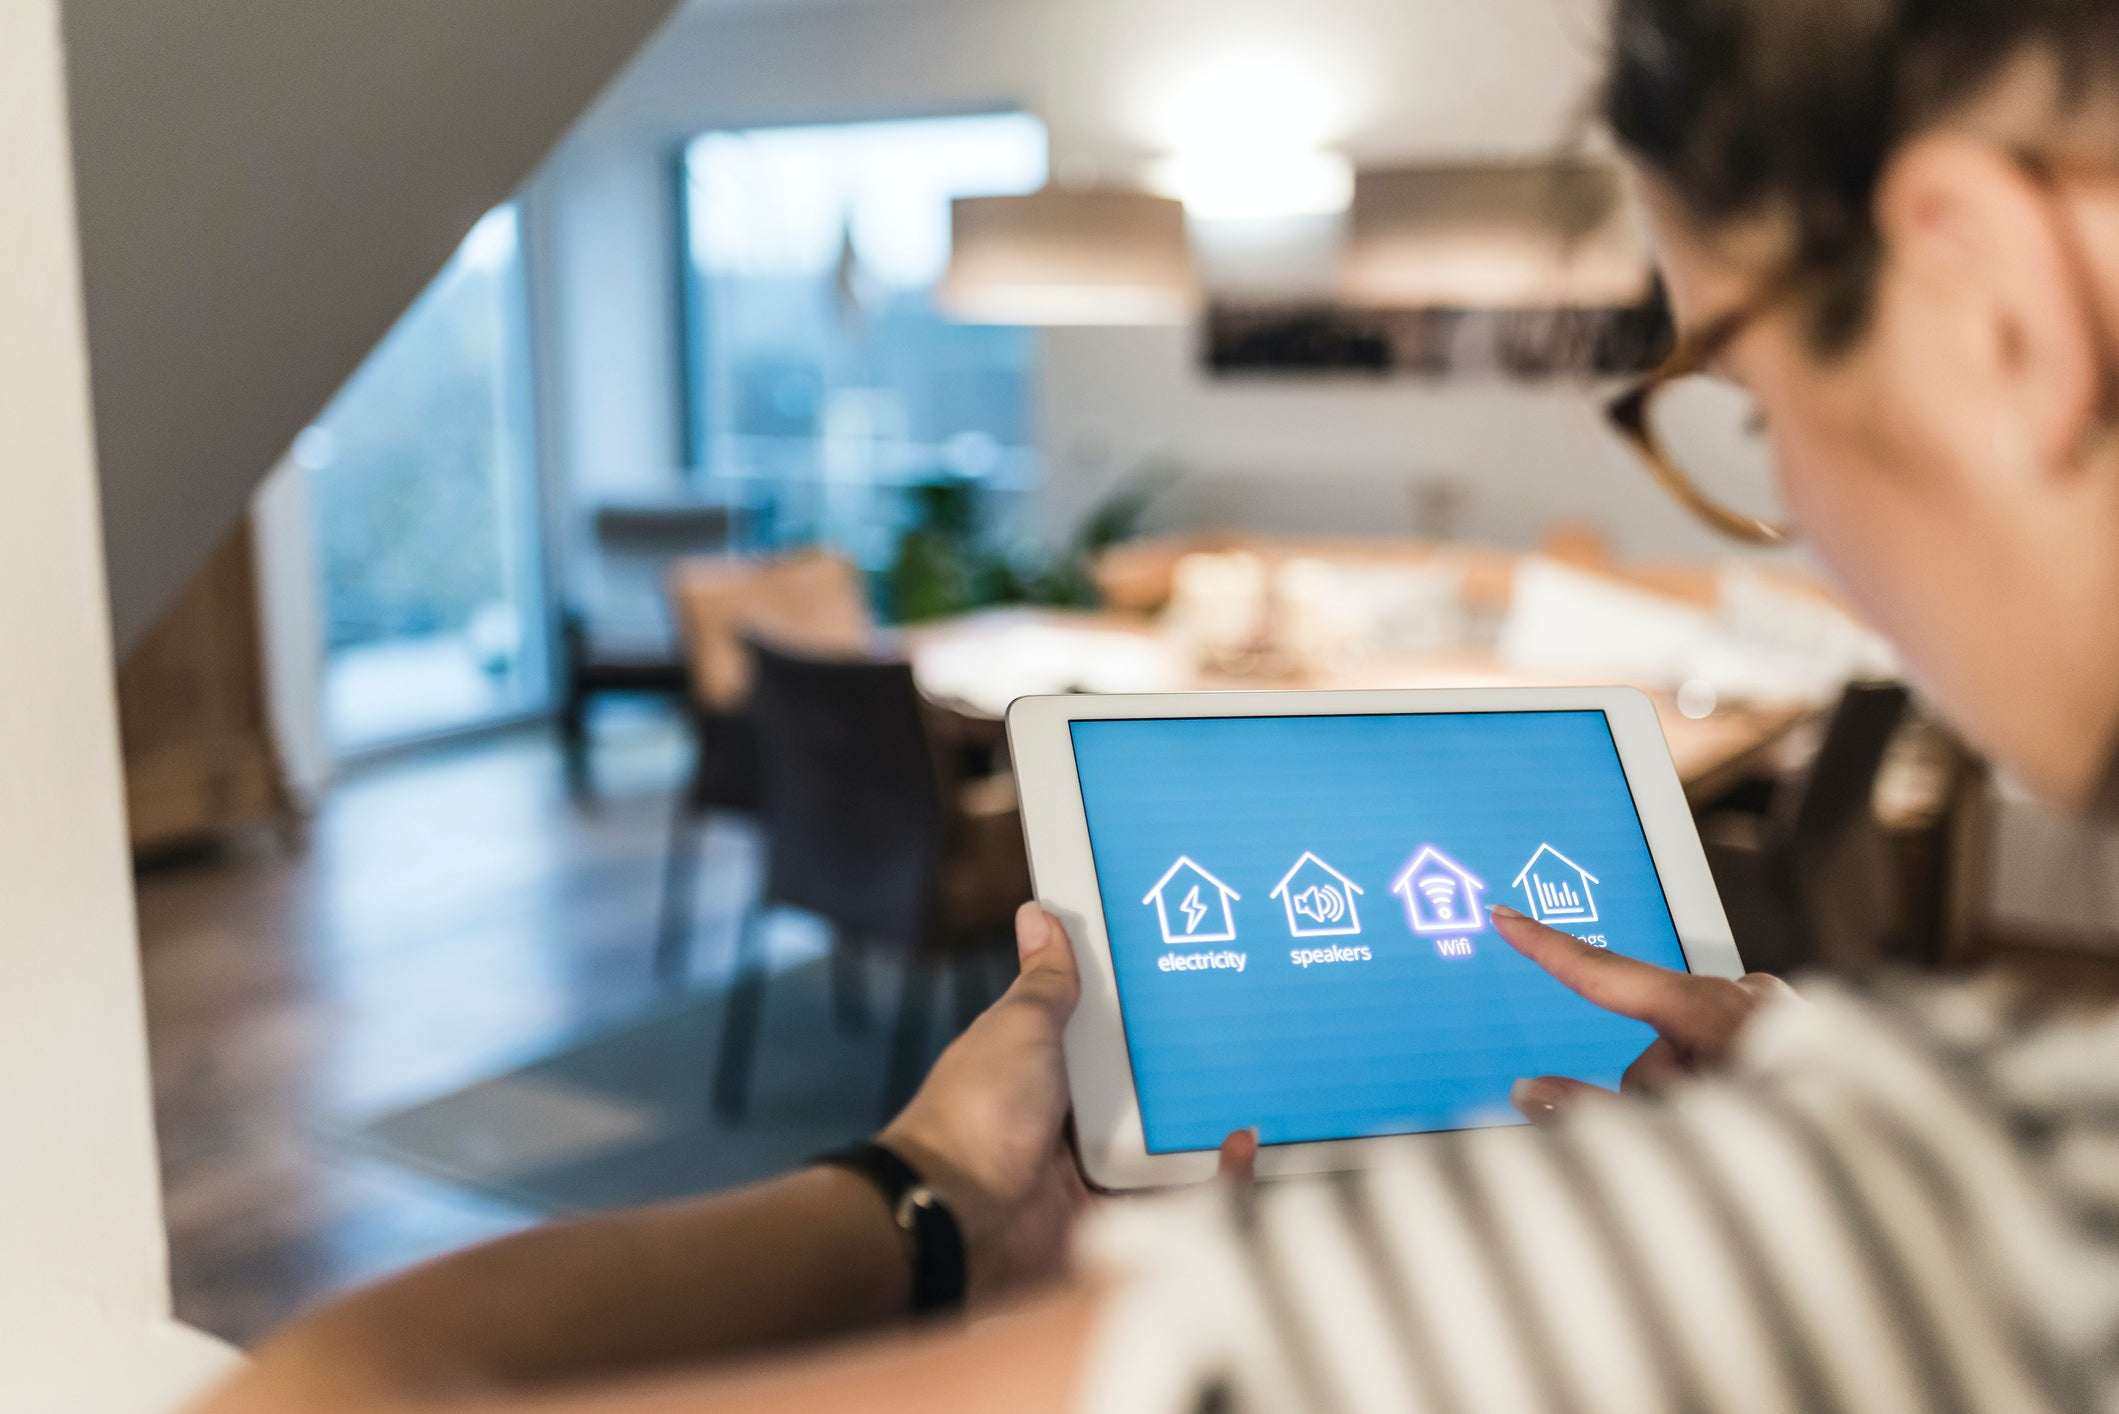 Connected Home: Linking Your Smart Home Devices to Your Security Systems